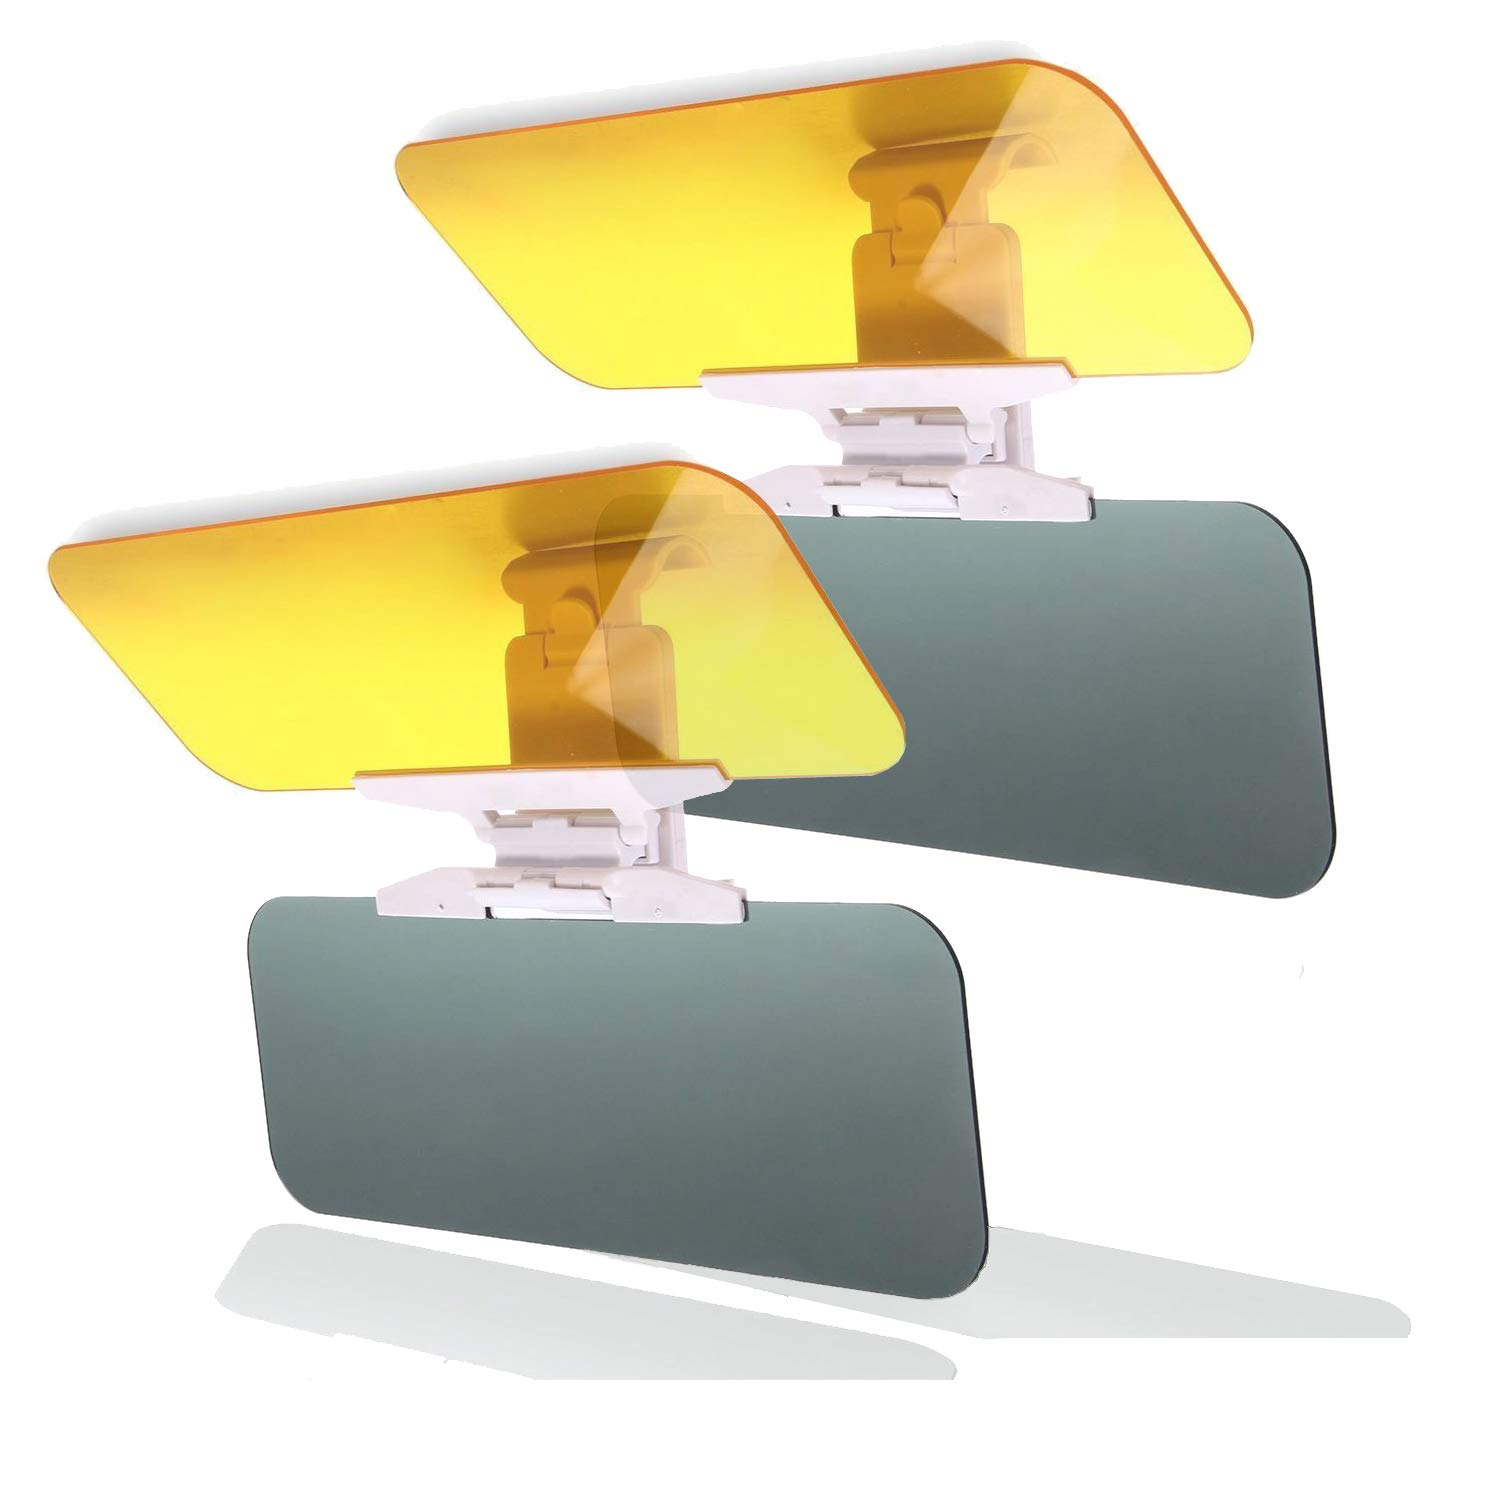 Goggles Shield Anti-Dazzle Windshield Day Night Anti-Glare Visor Sun Visor Extender SAILEAD 2 Pack Car Visor Extender Sun Blocker